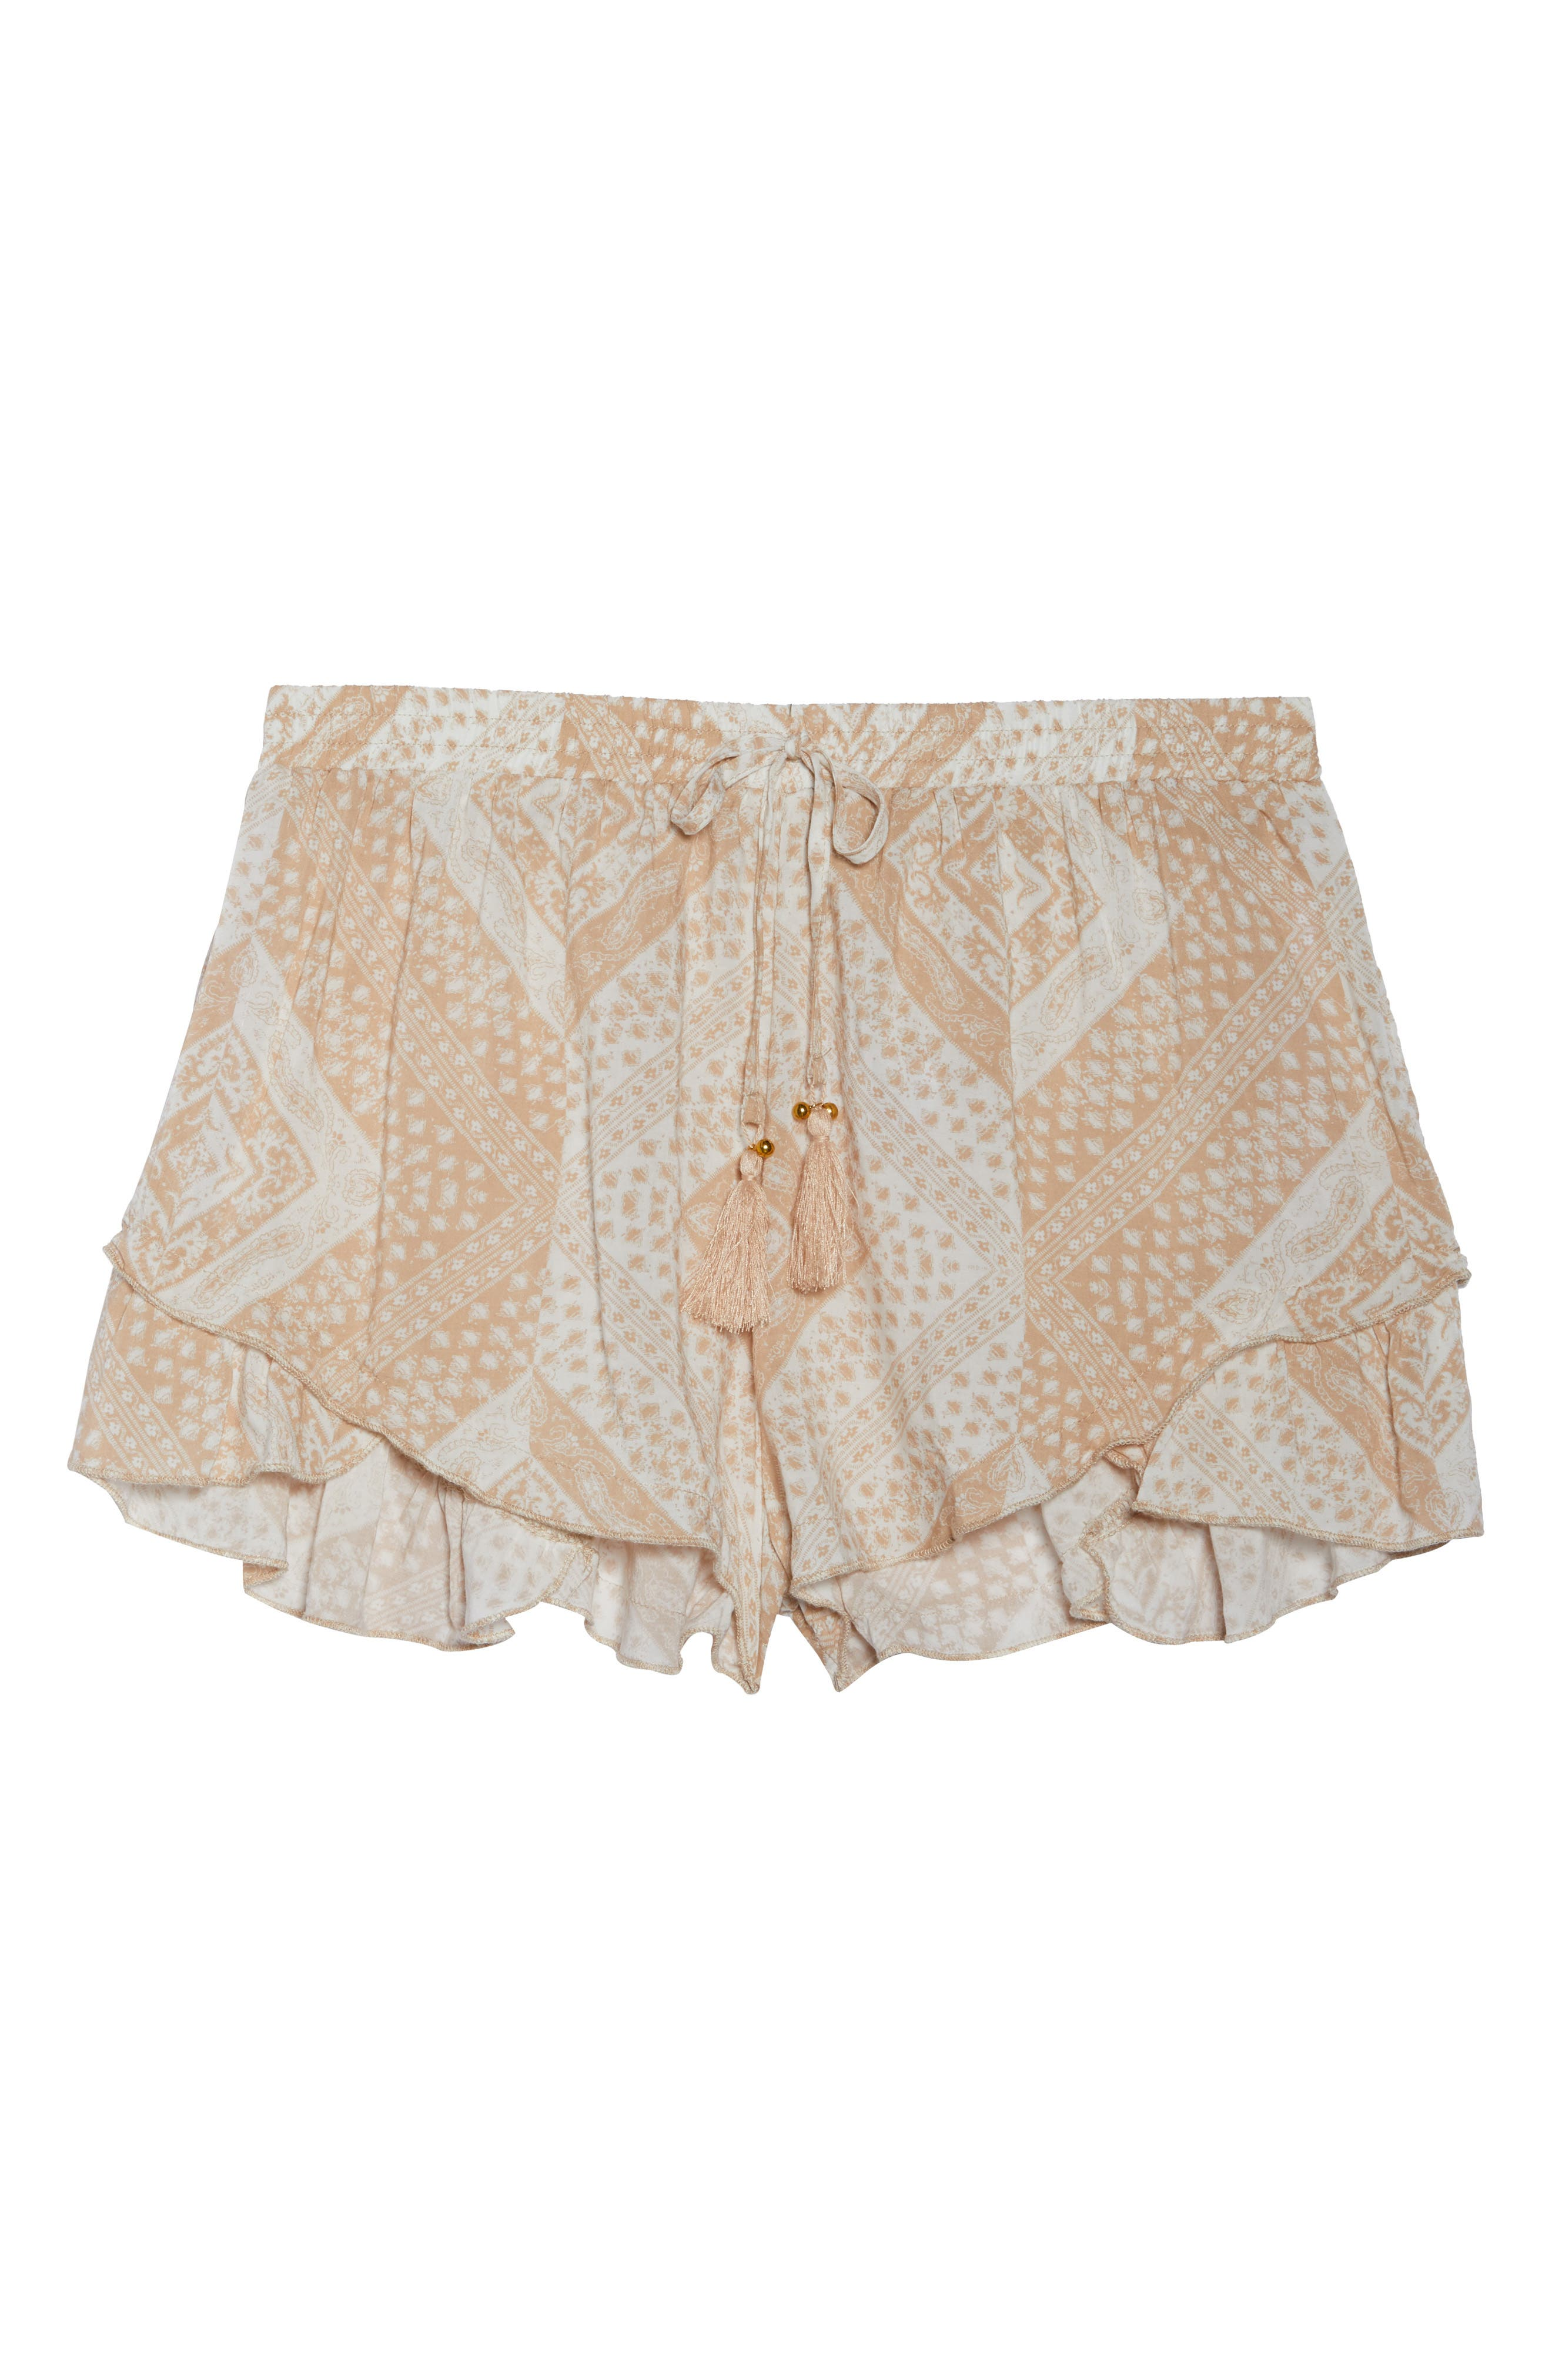 Tassel Trim Cover-Up Shorts,                             Alternate thumbnail 6, color,                             TAN SCARF